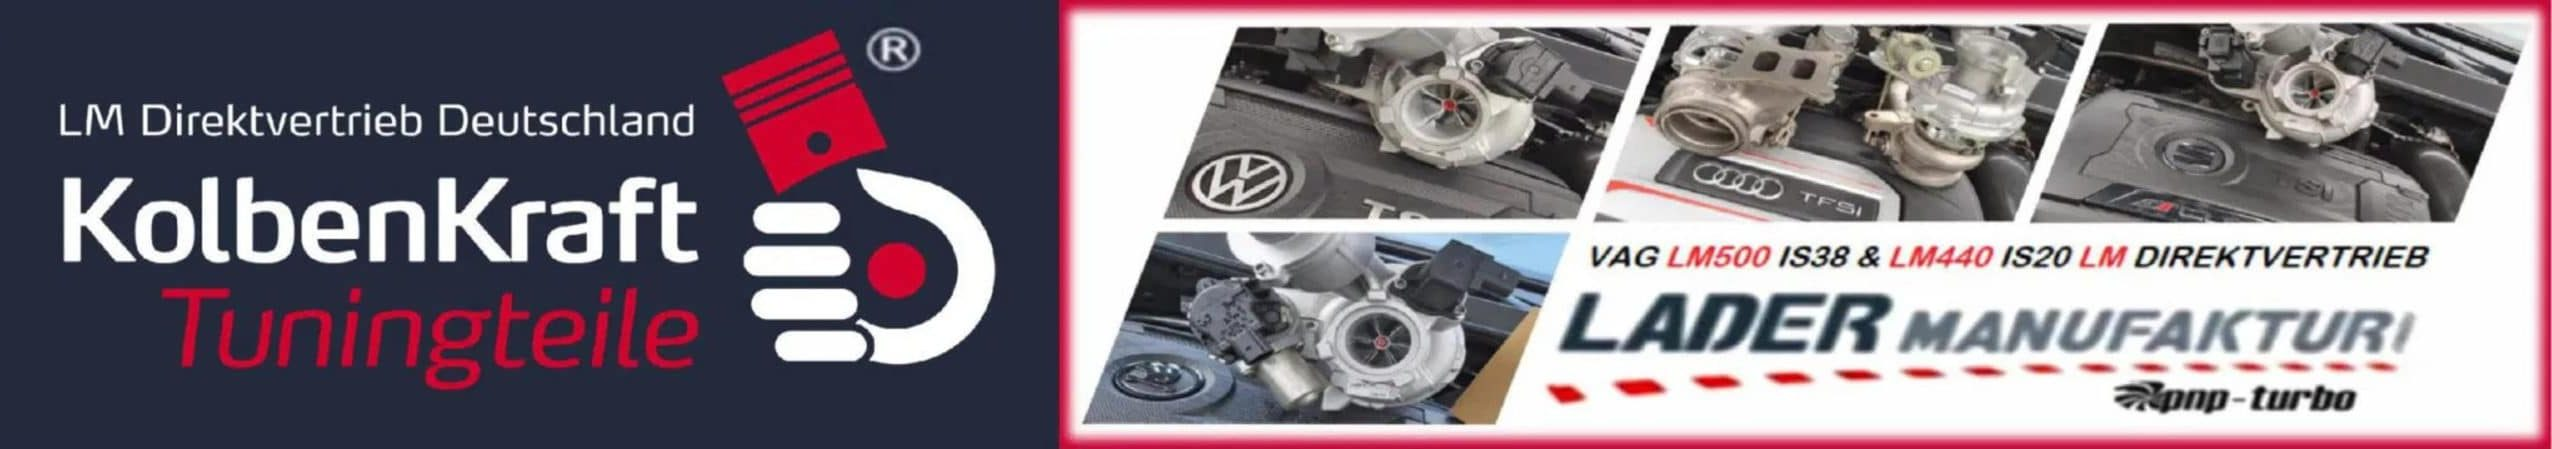 KolbenKraft Tuning | LM500 IS38 LM440 LM575 Upgrade Turbolader | VW Golf 7R GTI MK 7 VII